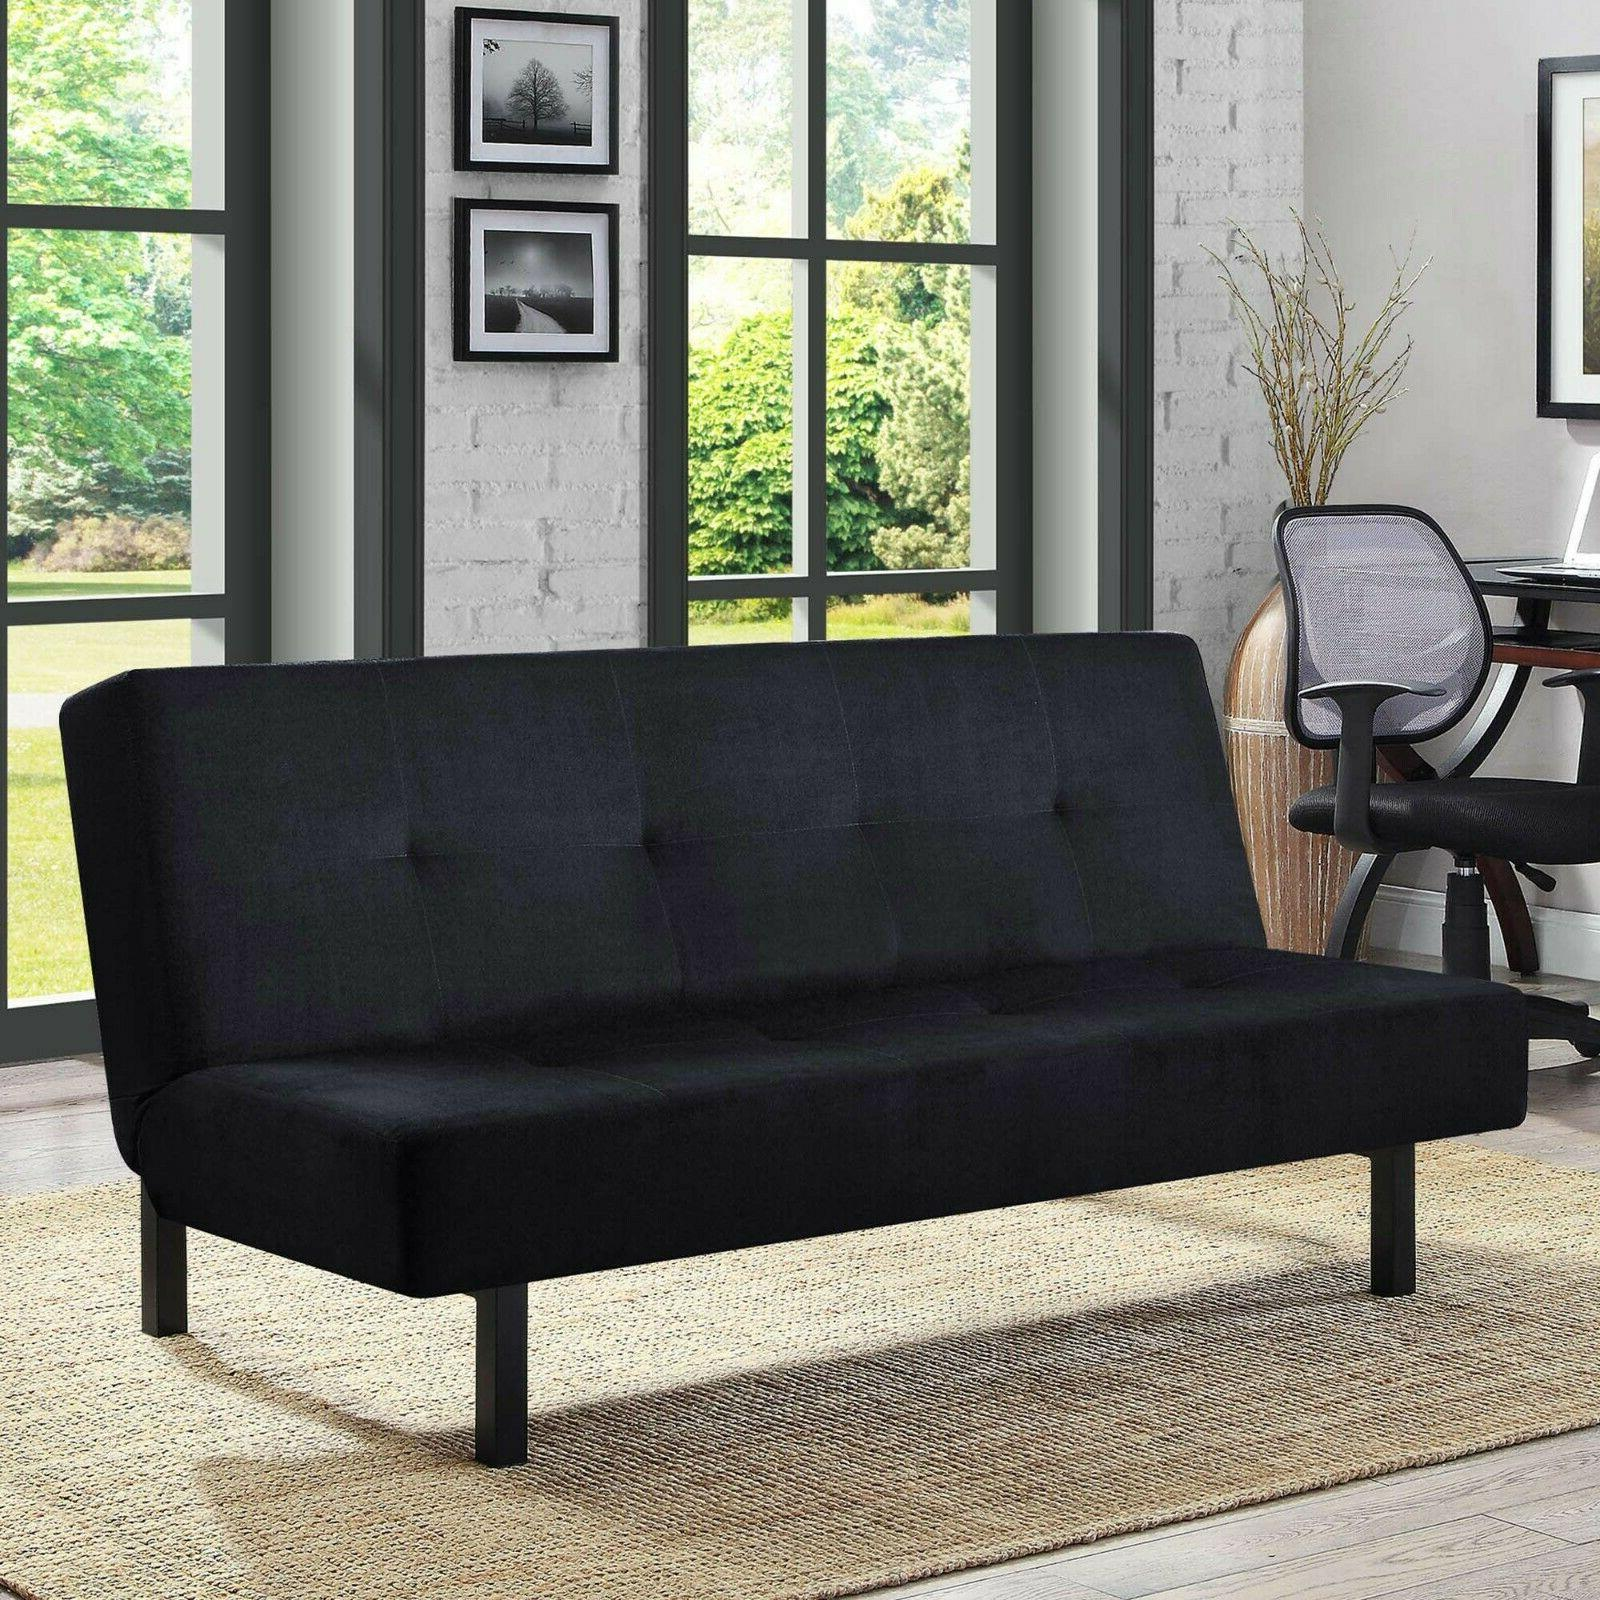 Convertible Couch Tufted Twin Size Mattress